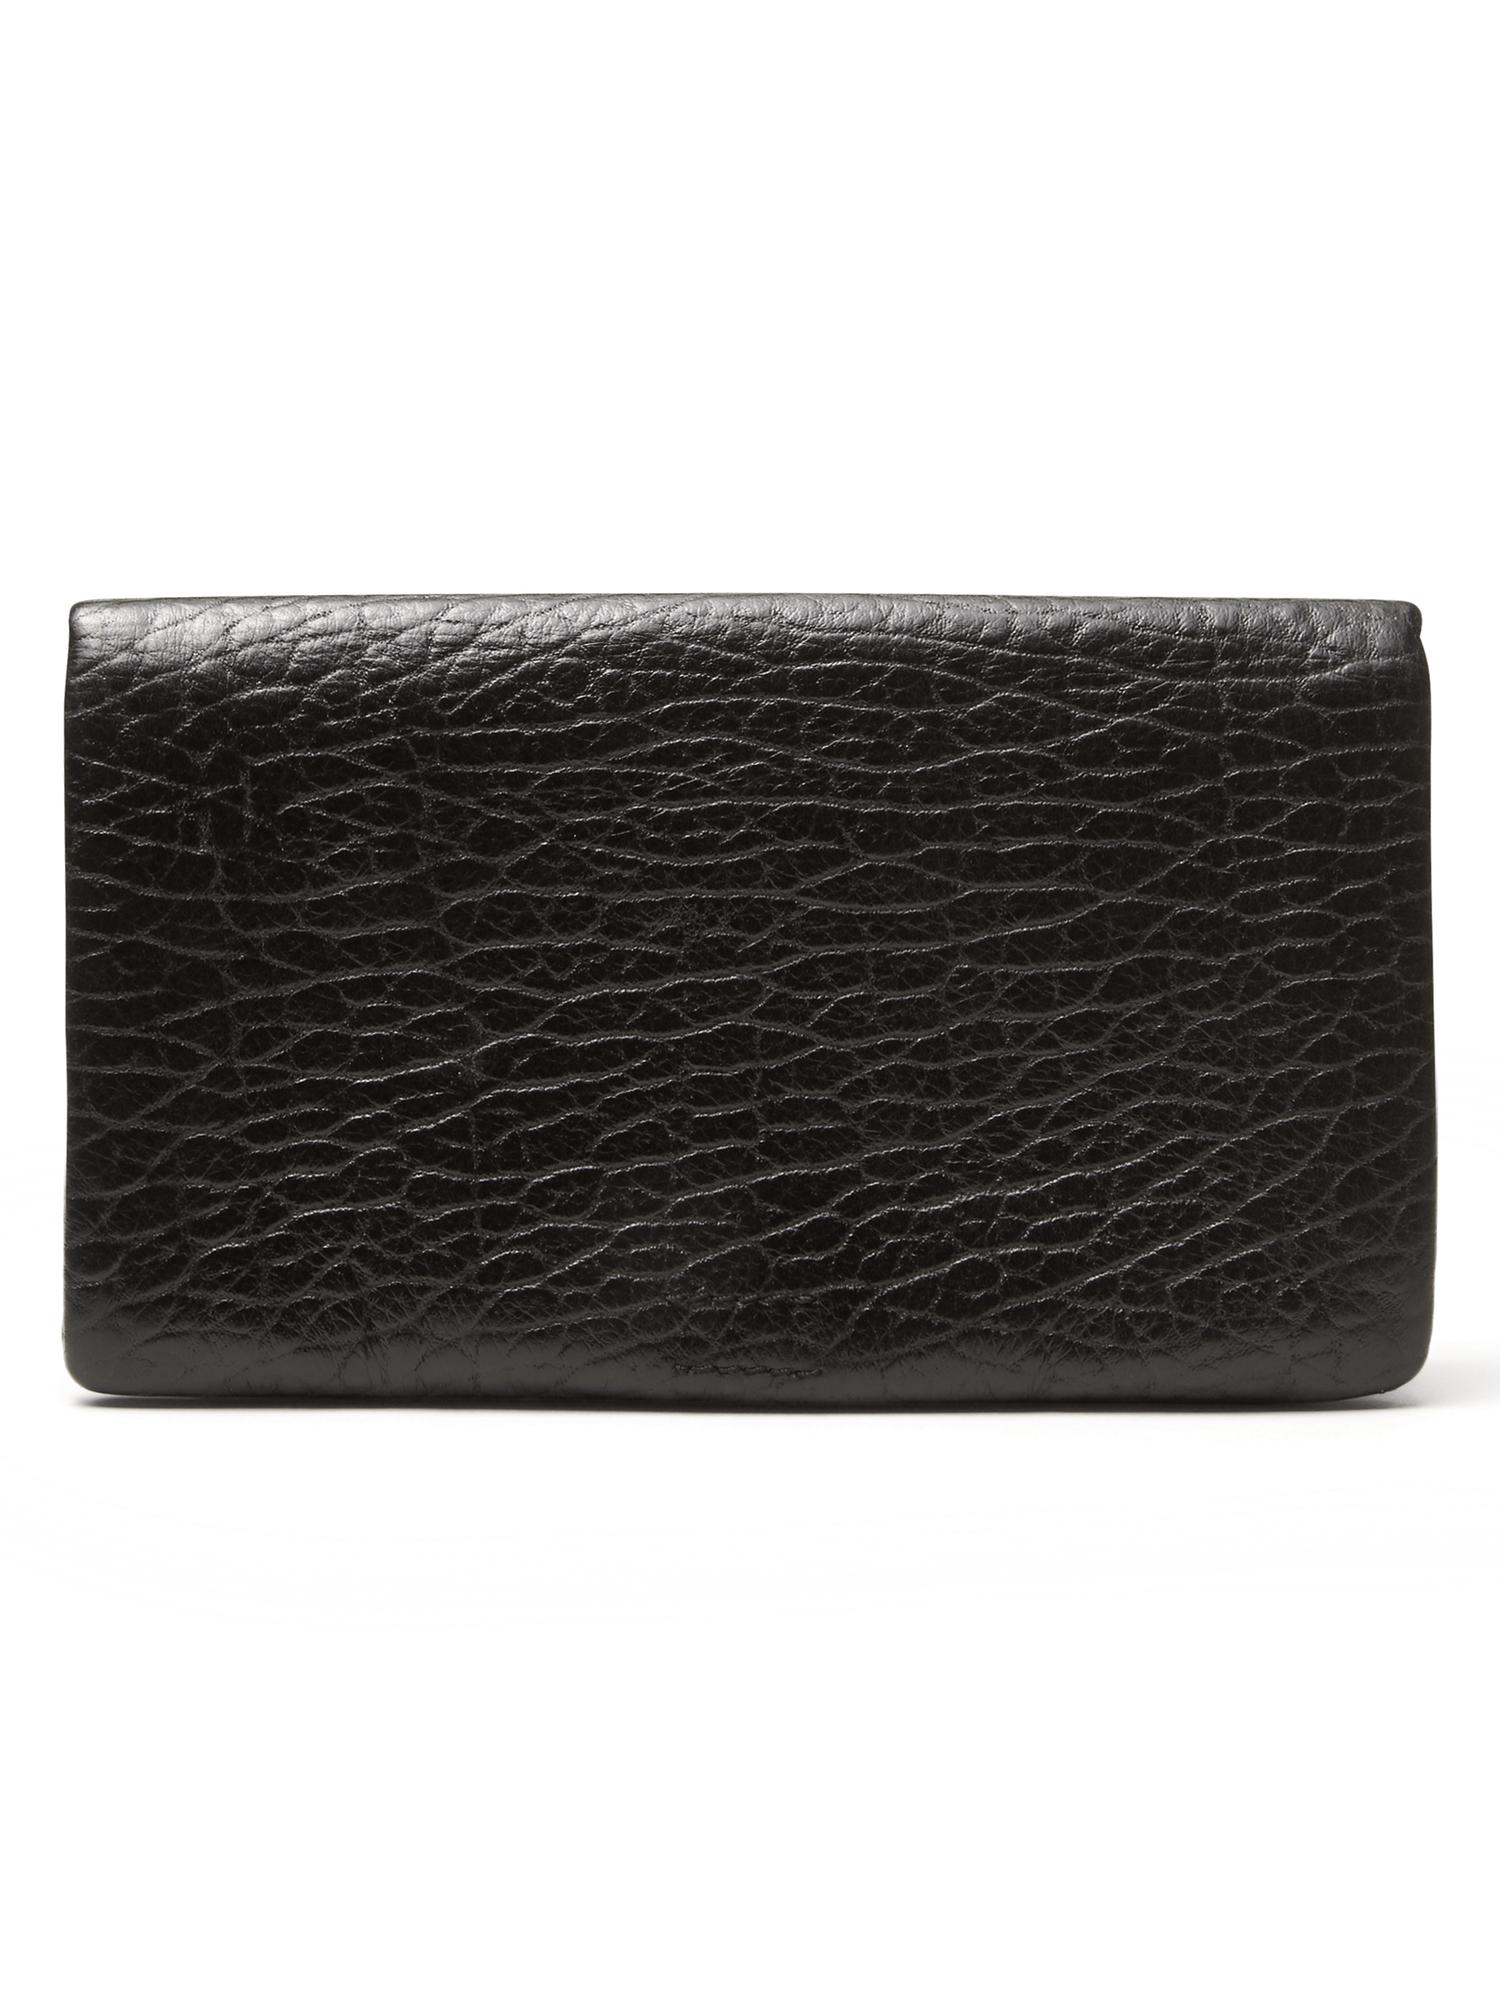 Discover the sleek designs of men's bags & wallets at Banana Republic. Find stylishly tailored men's wallets and more.